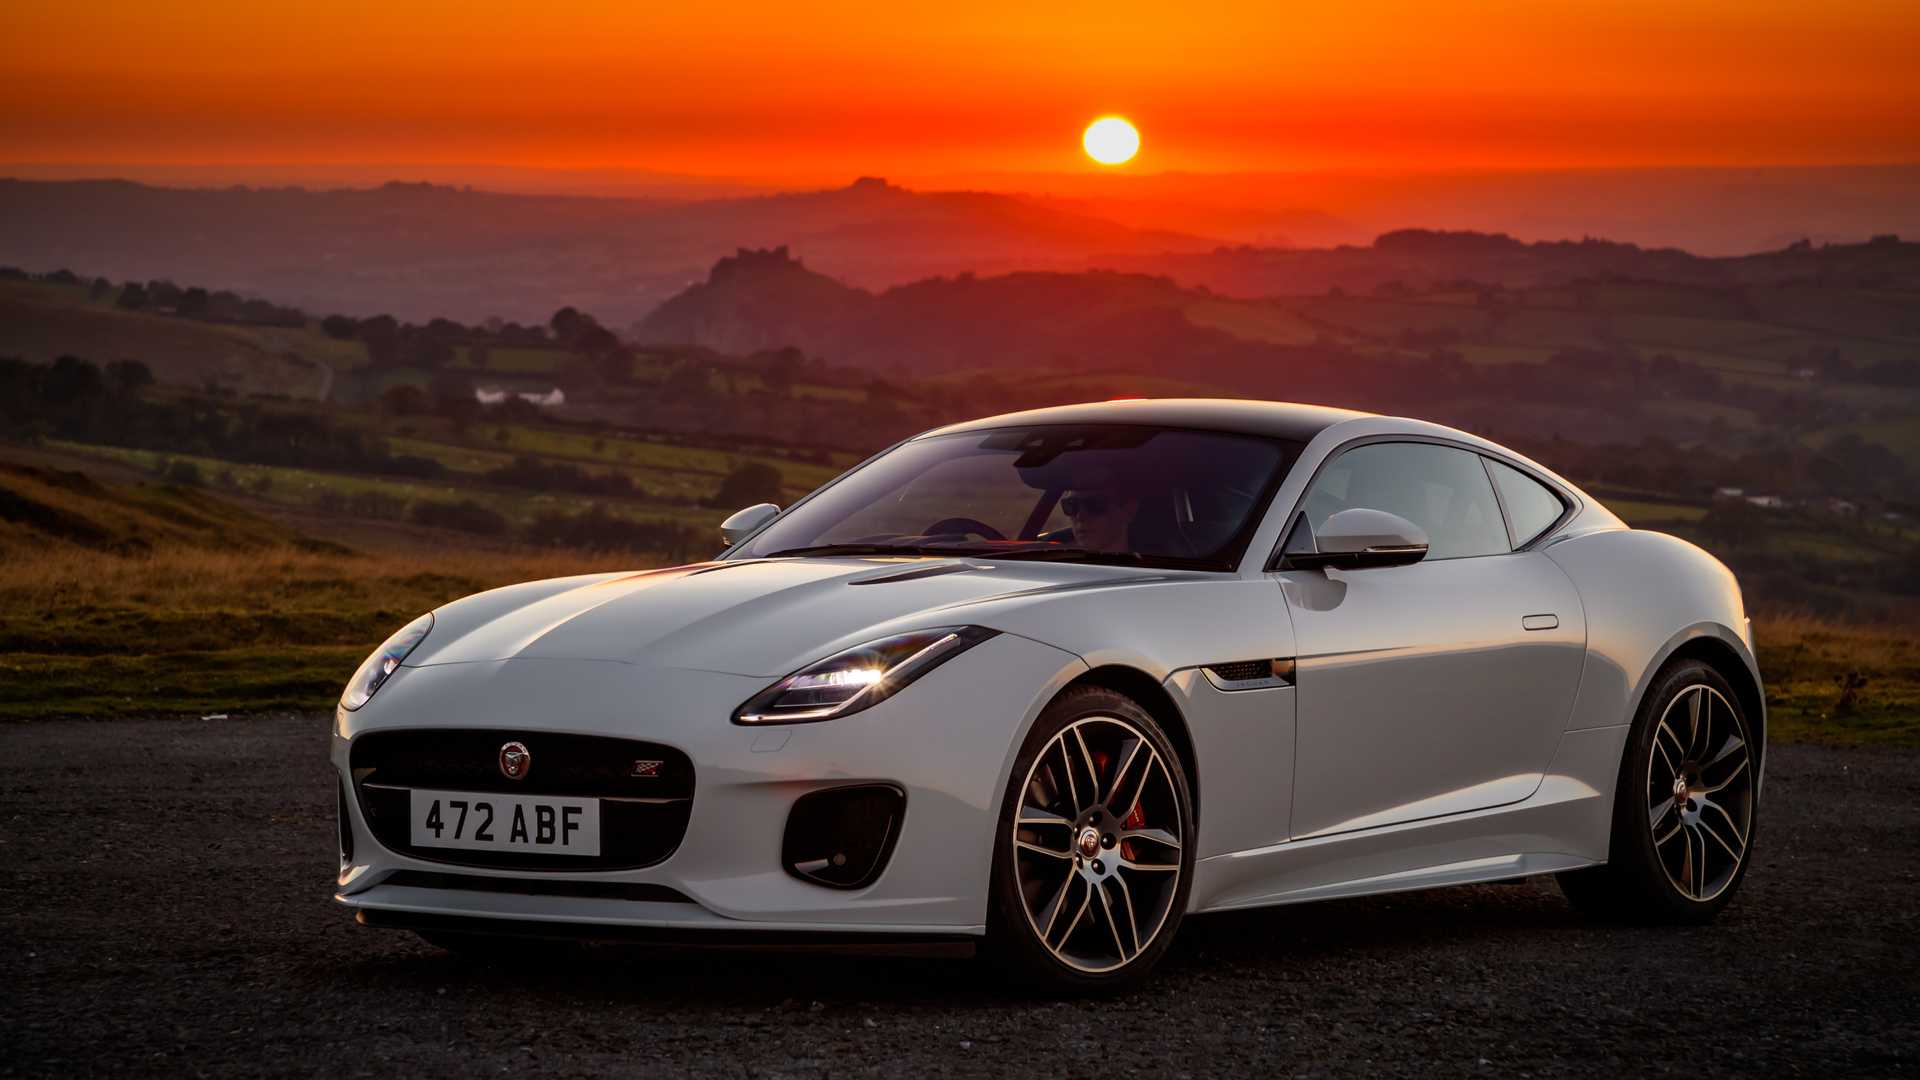 Jaguar F Type Checkered Flag Limited Edition Likes Black Trim